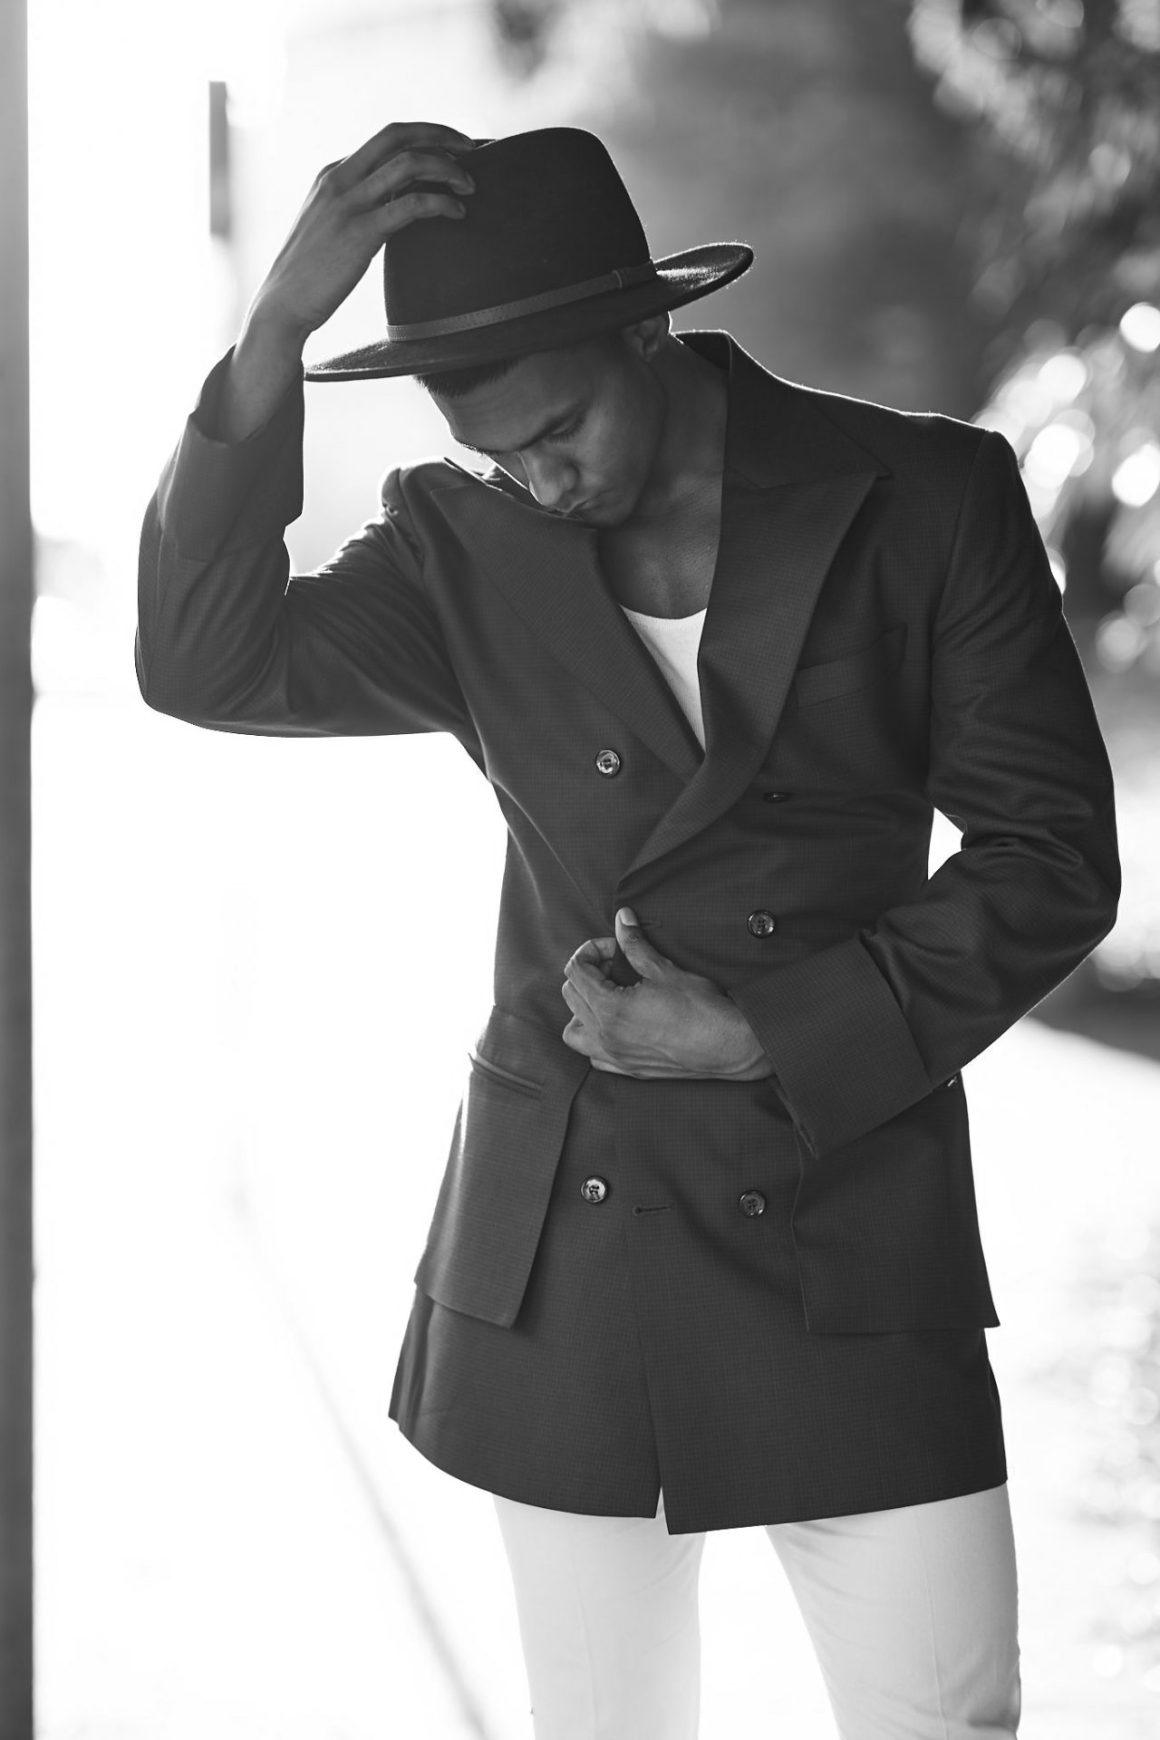 Navid A by Bruno Domingues